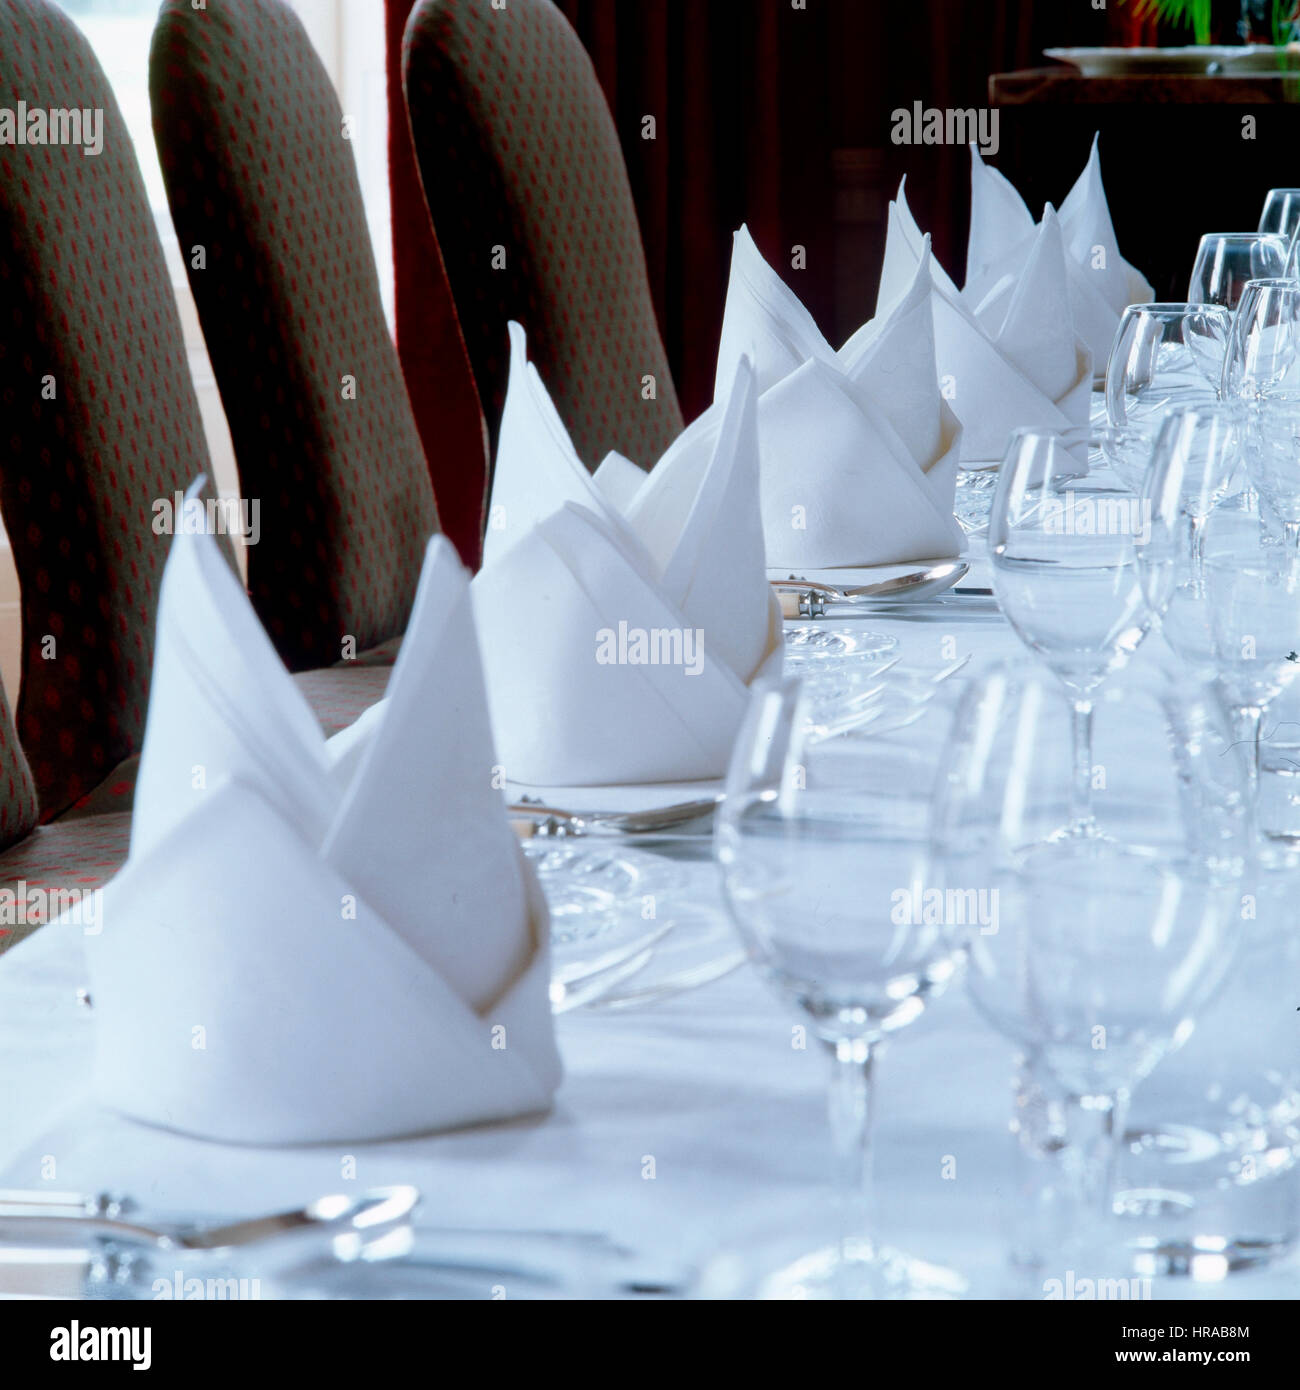 A set table with folded napkins. - Stock Image